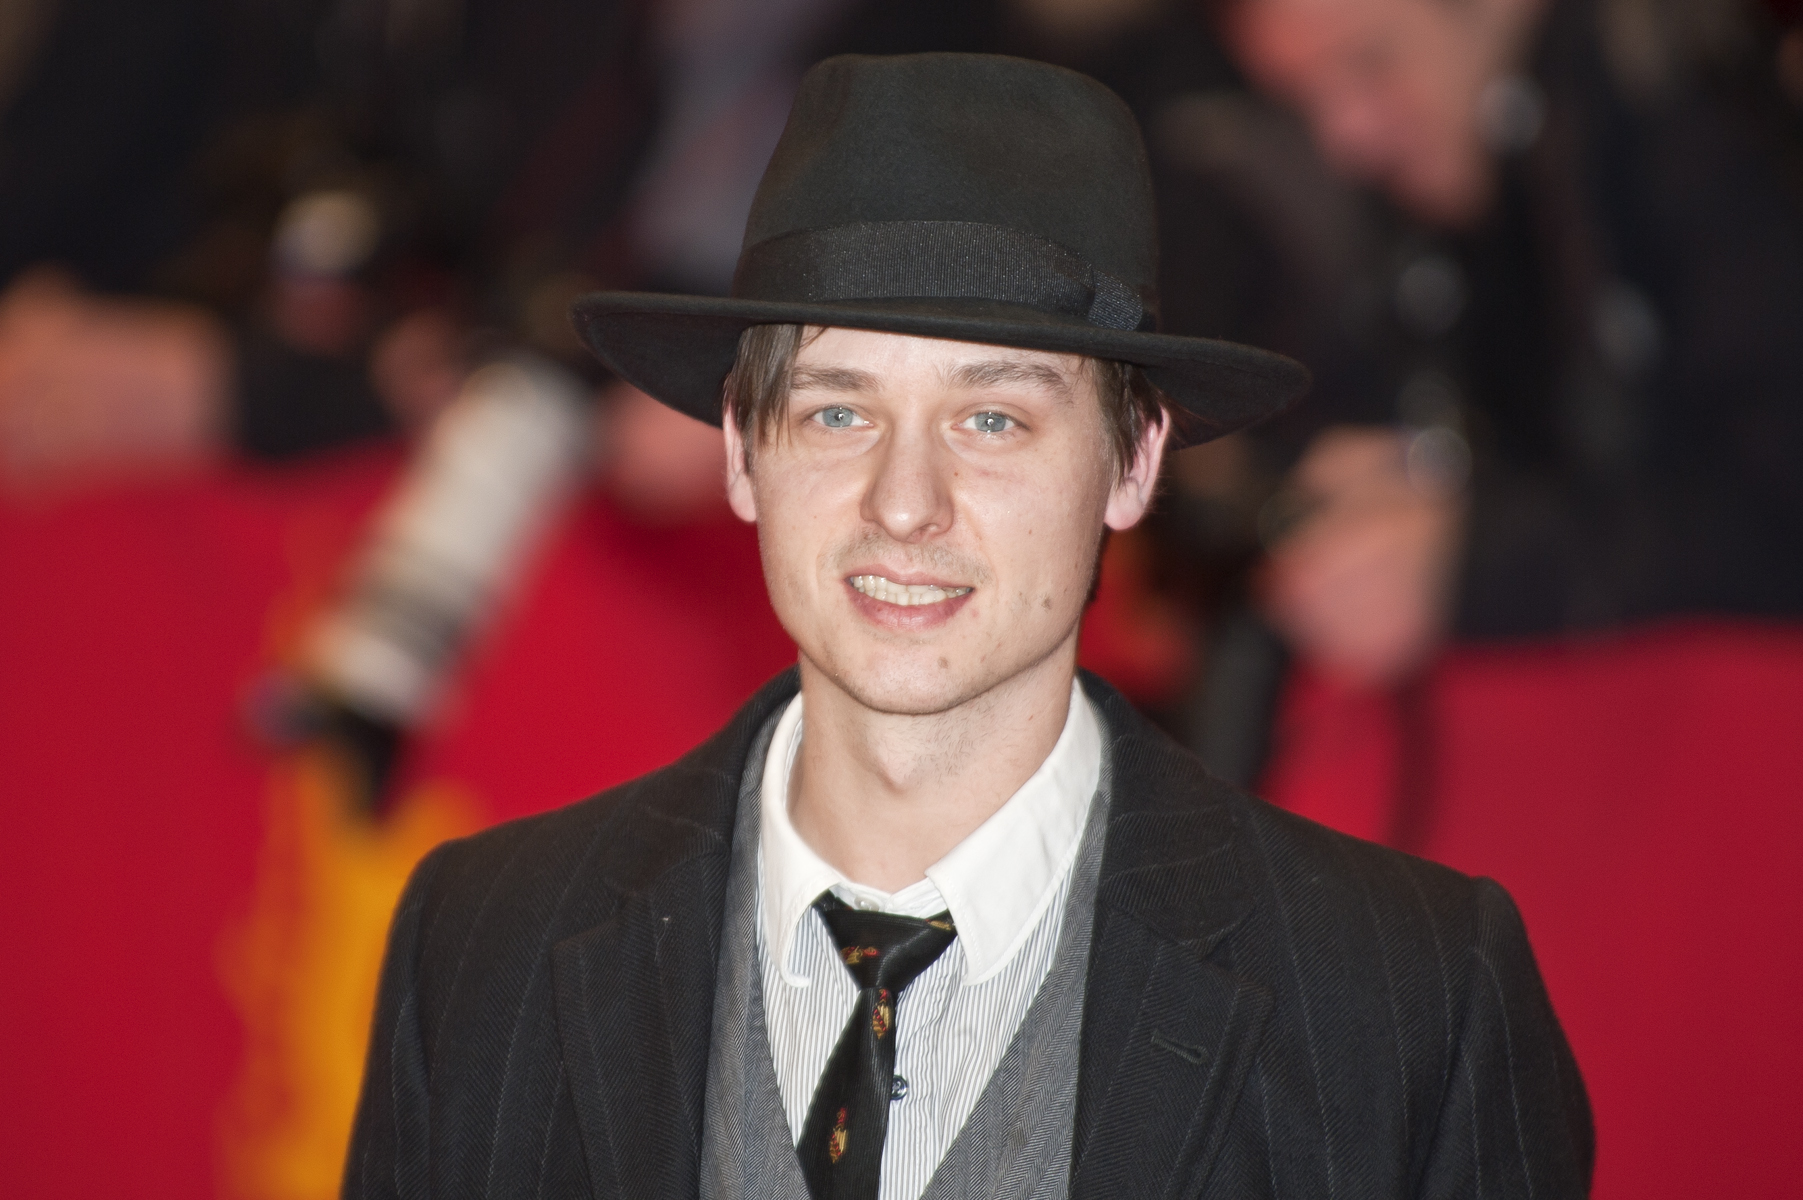 The 38-year old son of father (?) and mother(?) Tom Schilling in 2020 photo. Tom Schilling earned a  million dollar salary - leaving the net worth at 2 million in 2020